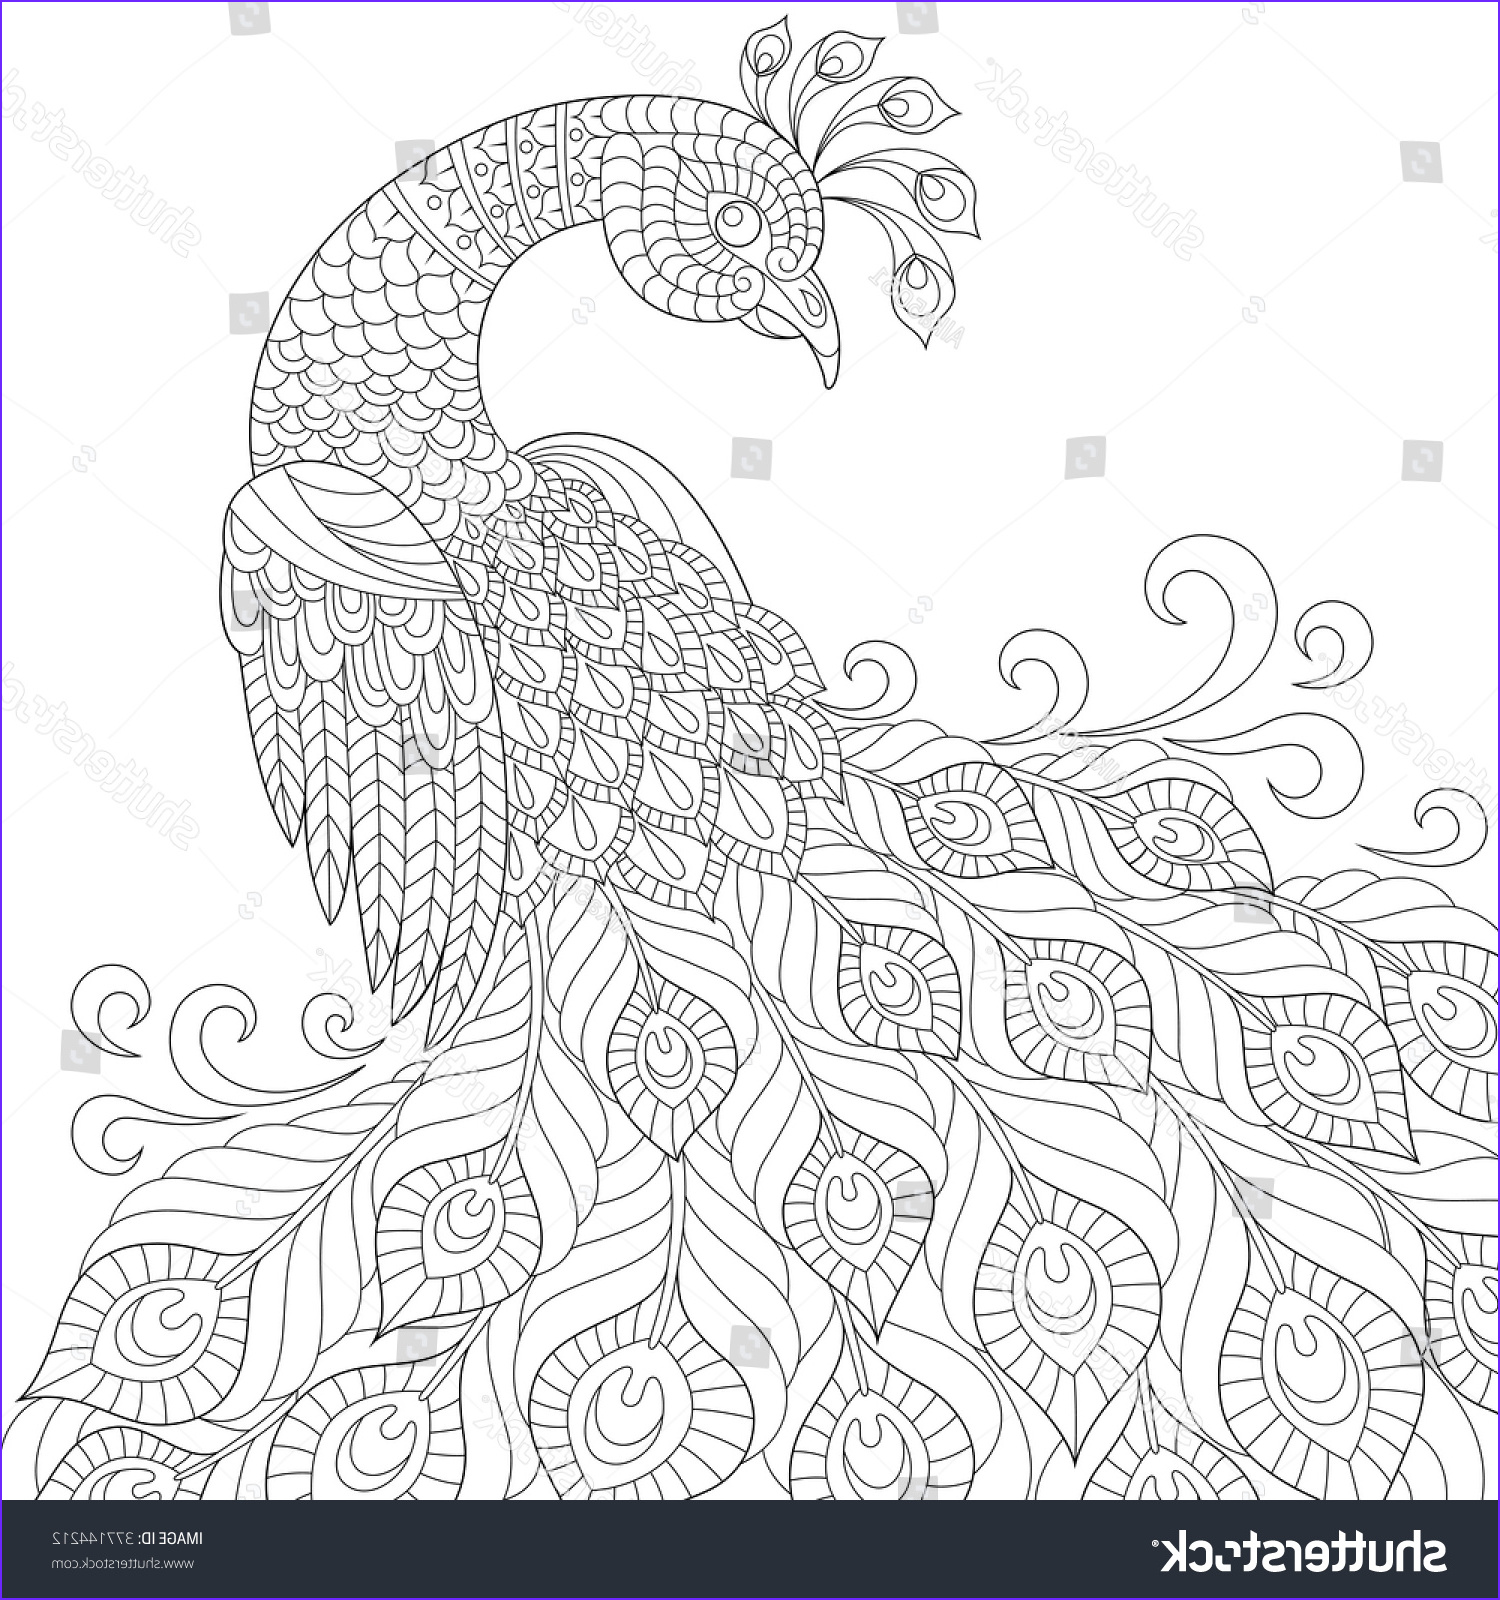 stock vector decorative peacock adult anti stress coloring page black and white hand drawn doodle for coloring